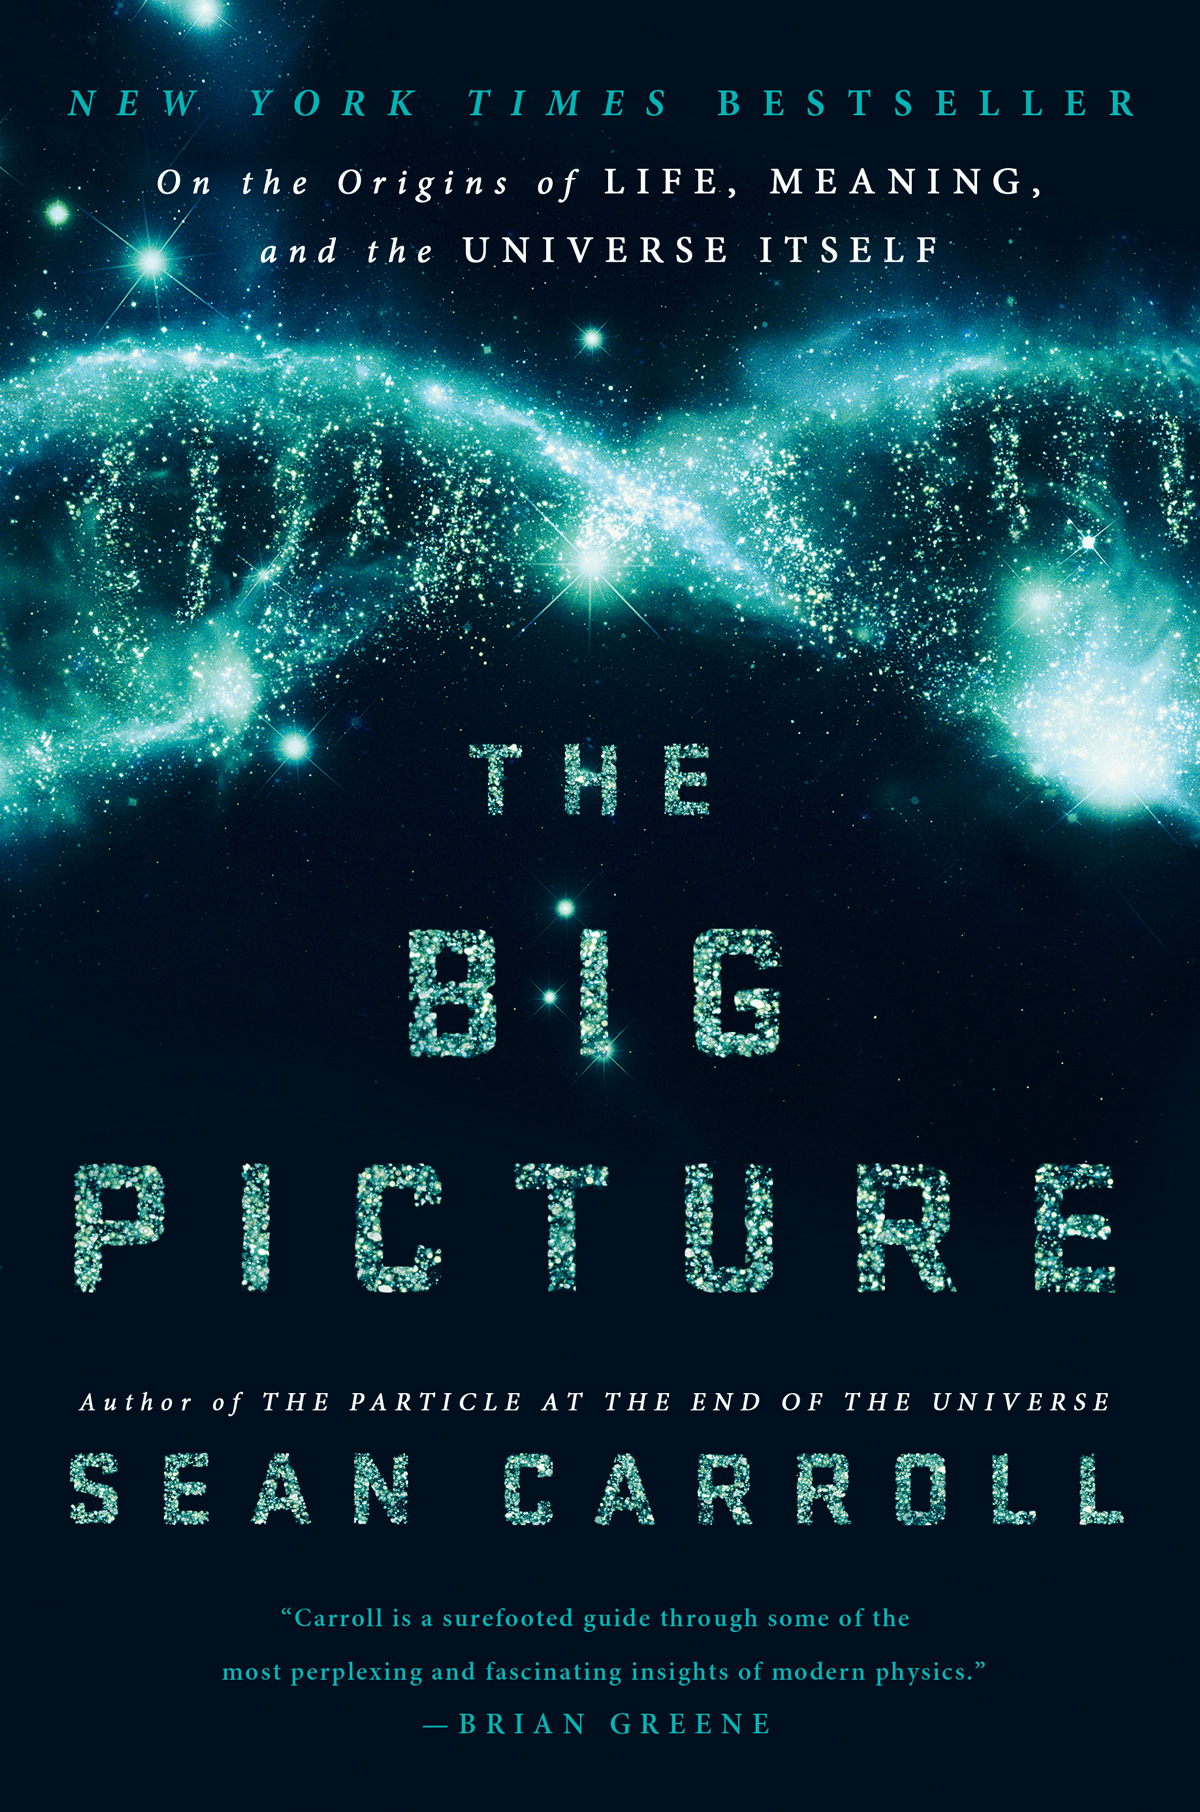 Existential Therapy from the Universe: Physicist Sean Carroll on How Poetic Naturalism Illuminates Our Human Search for Meaning